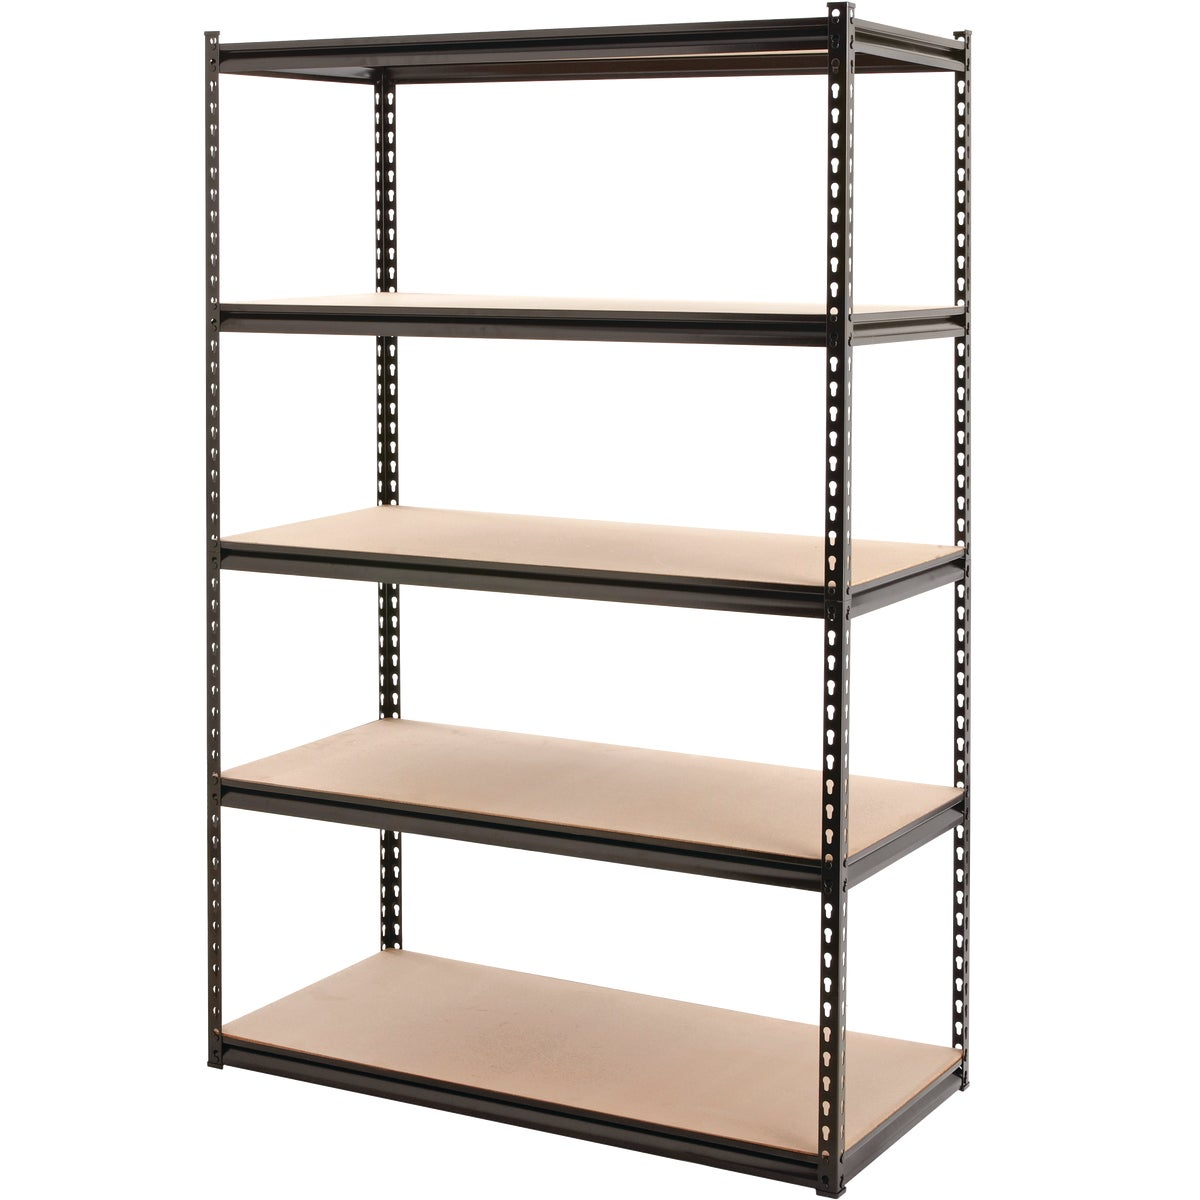 48X24X72 METAL SHELVING - GRA482472D5PDBT by Rapid Rack Industrie